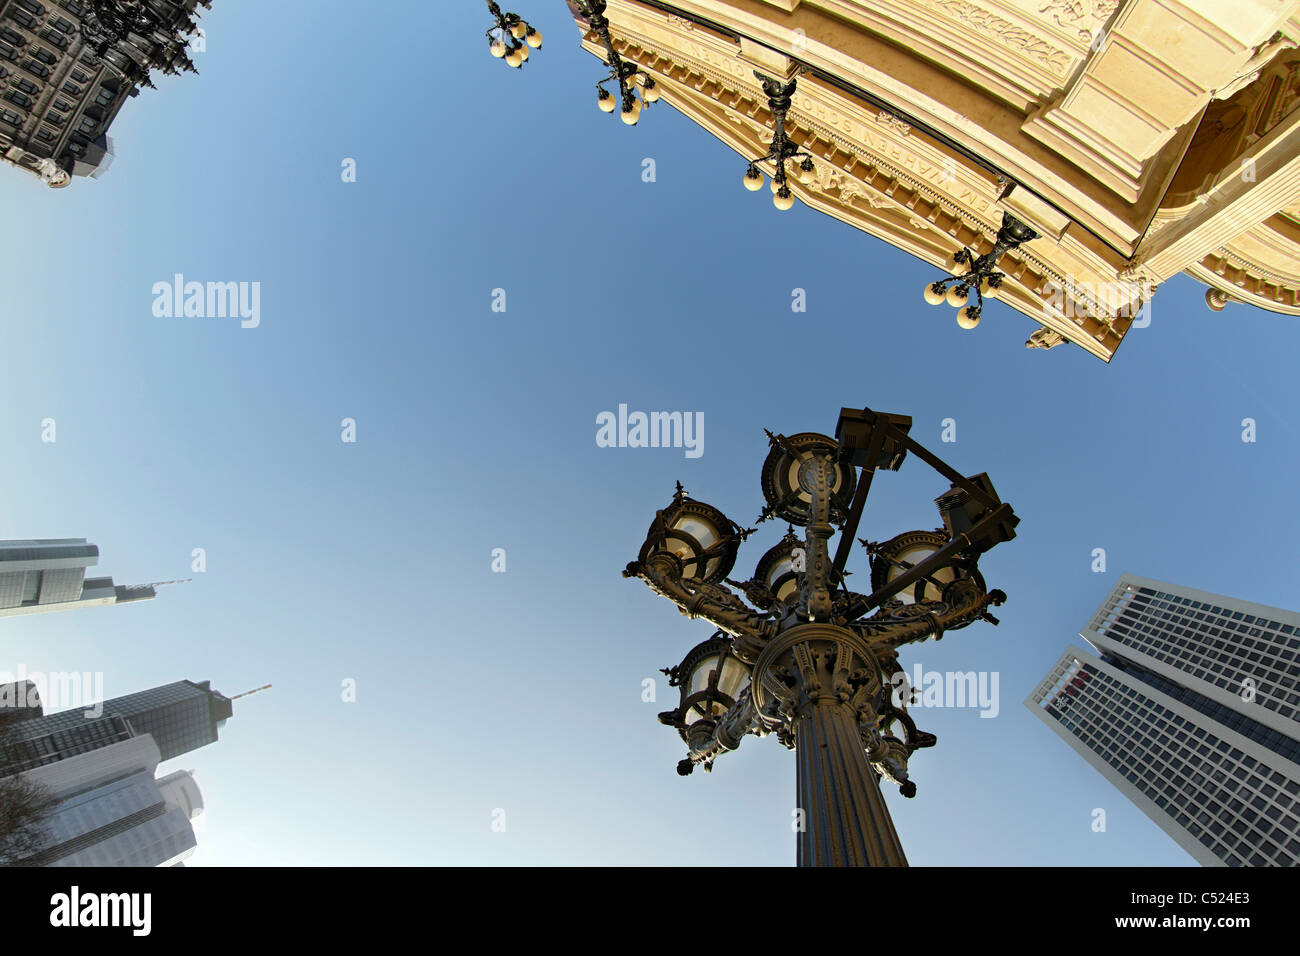 Alte Oper Frankfurt, frog perspective, Frankfurt am Main, Hesse, Germany, Europe - Stock Image